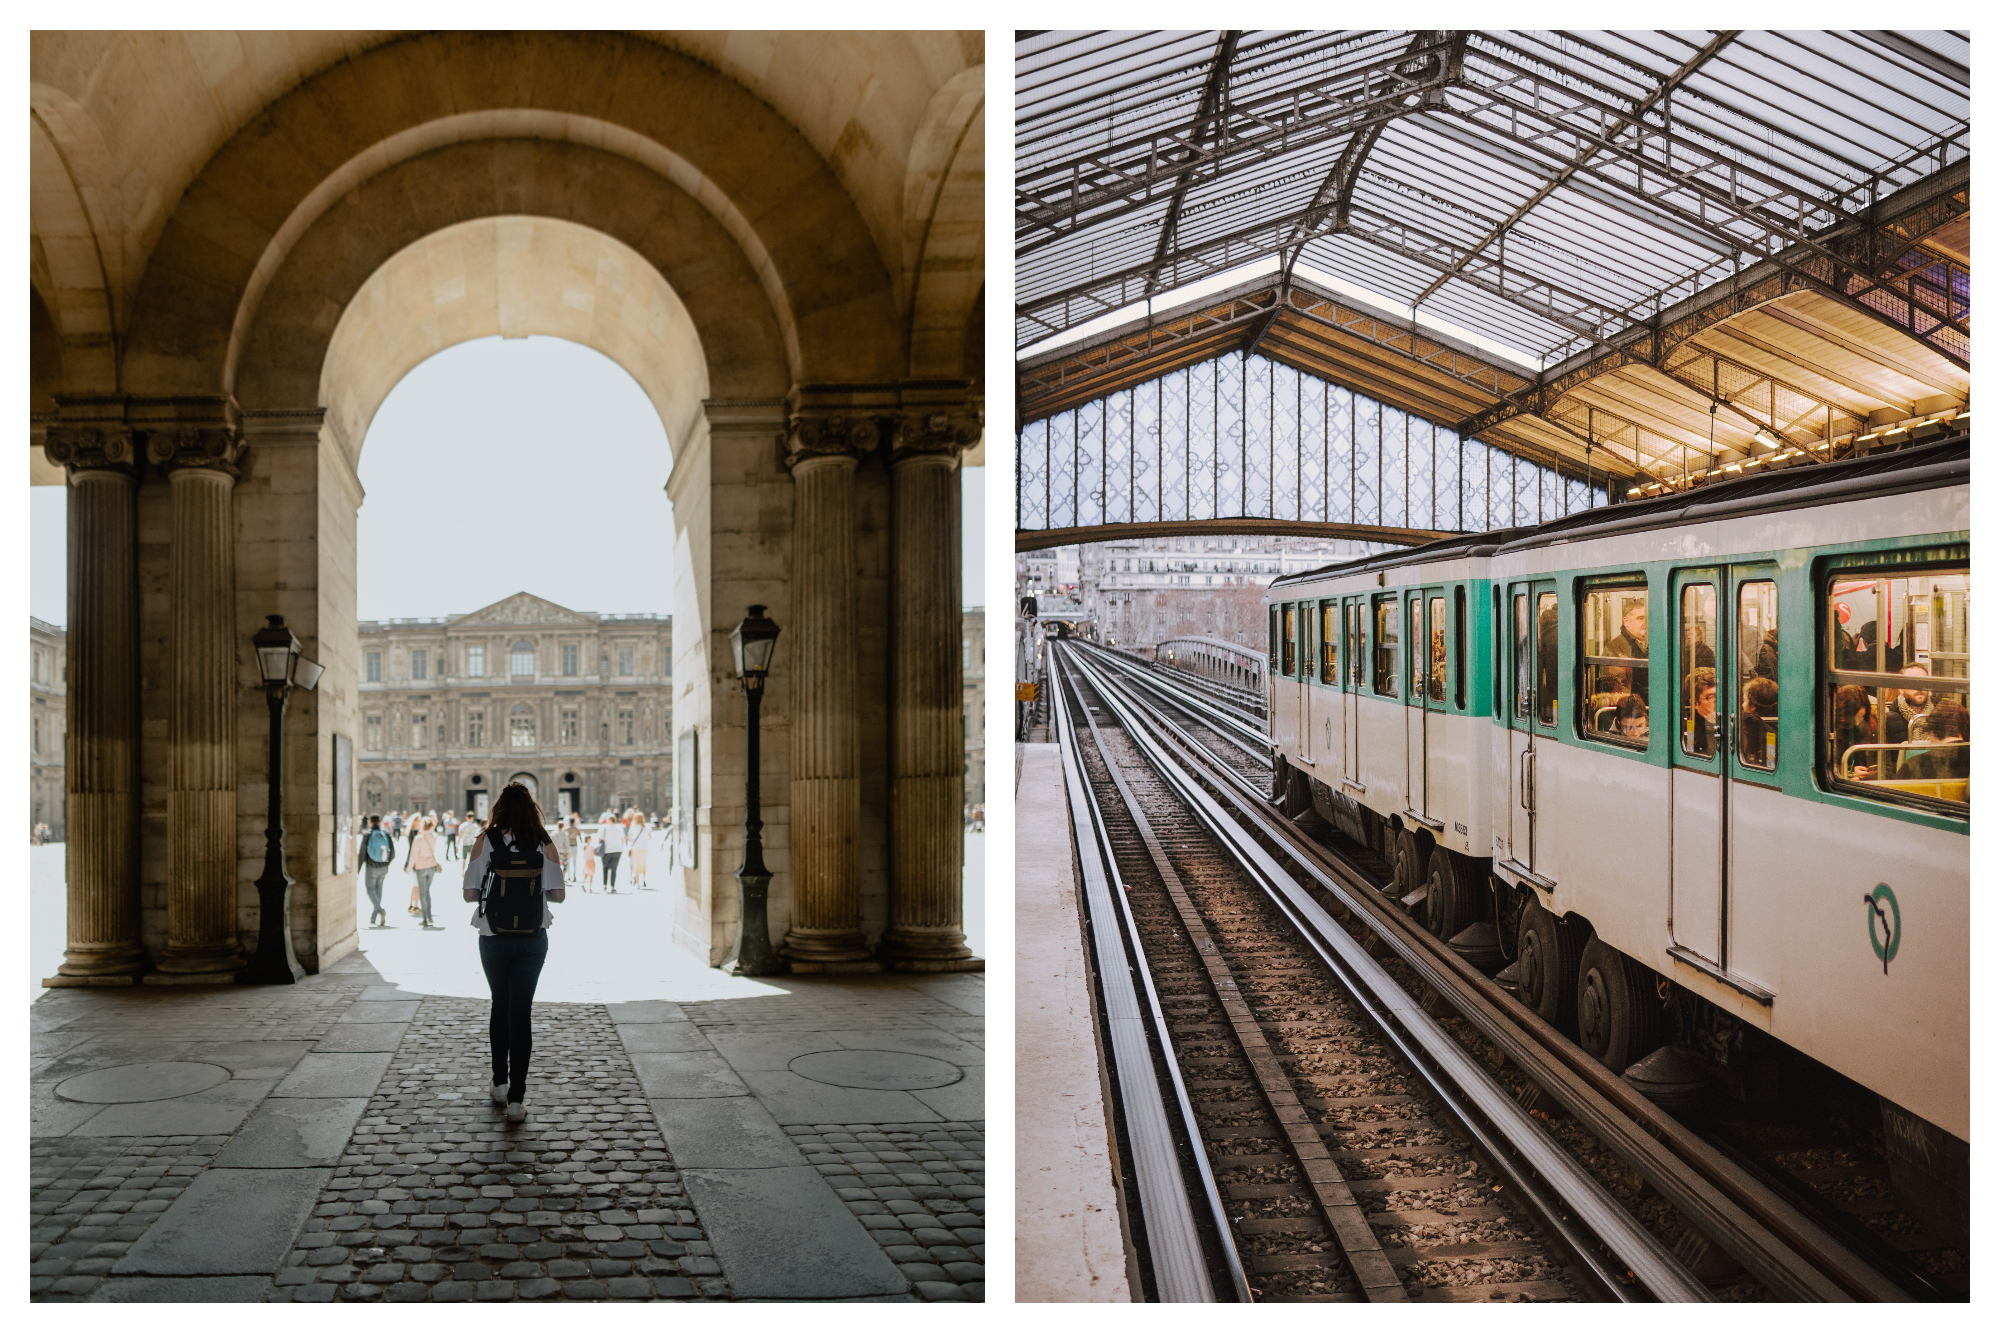 On left: A girl walks into the light-flooded back courtyard of the Louvre, framed by the majestic archway and classic Paris street lamps. On right: Metro line six passes through a station. In tram mode, it rides above ground on a bridge, giving riders a beautiful view of Paris.